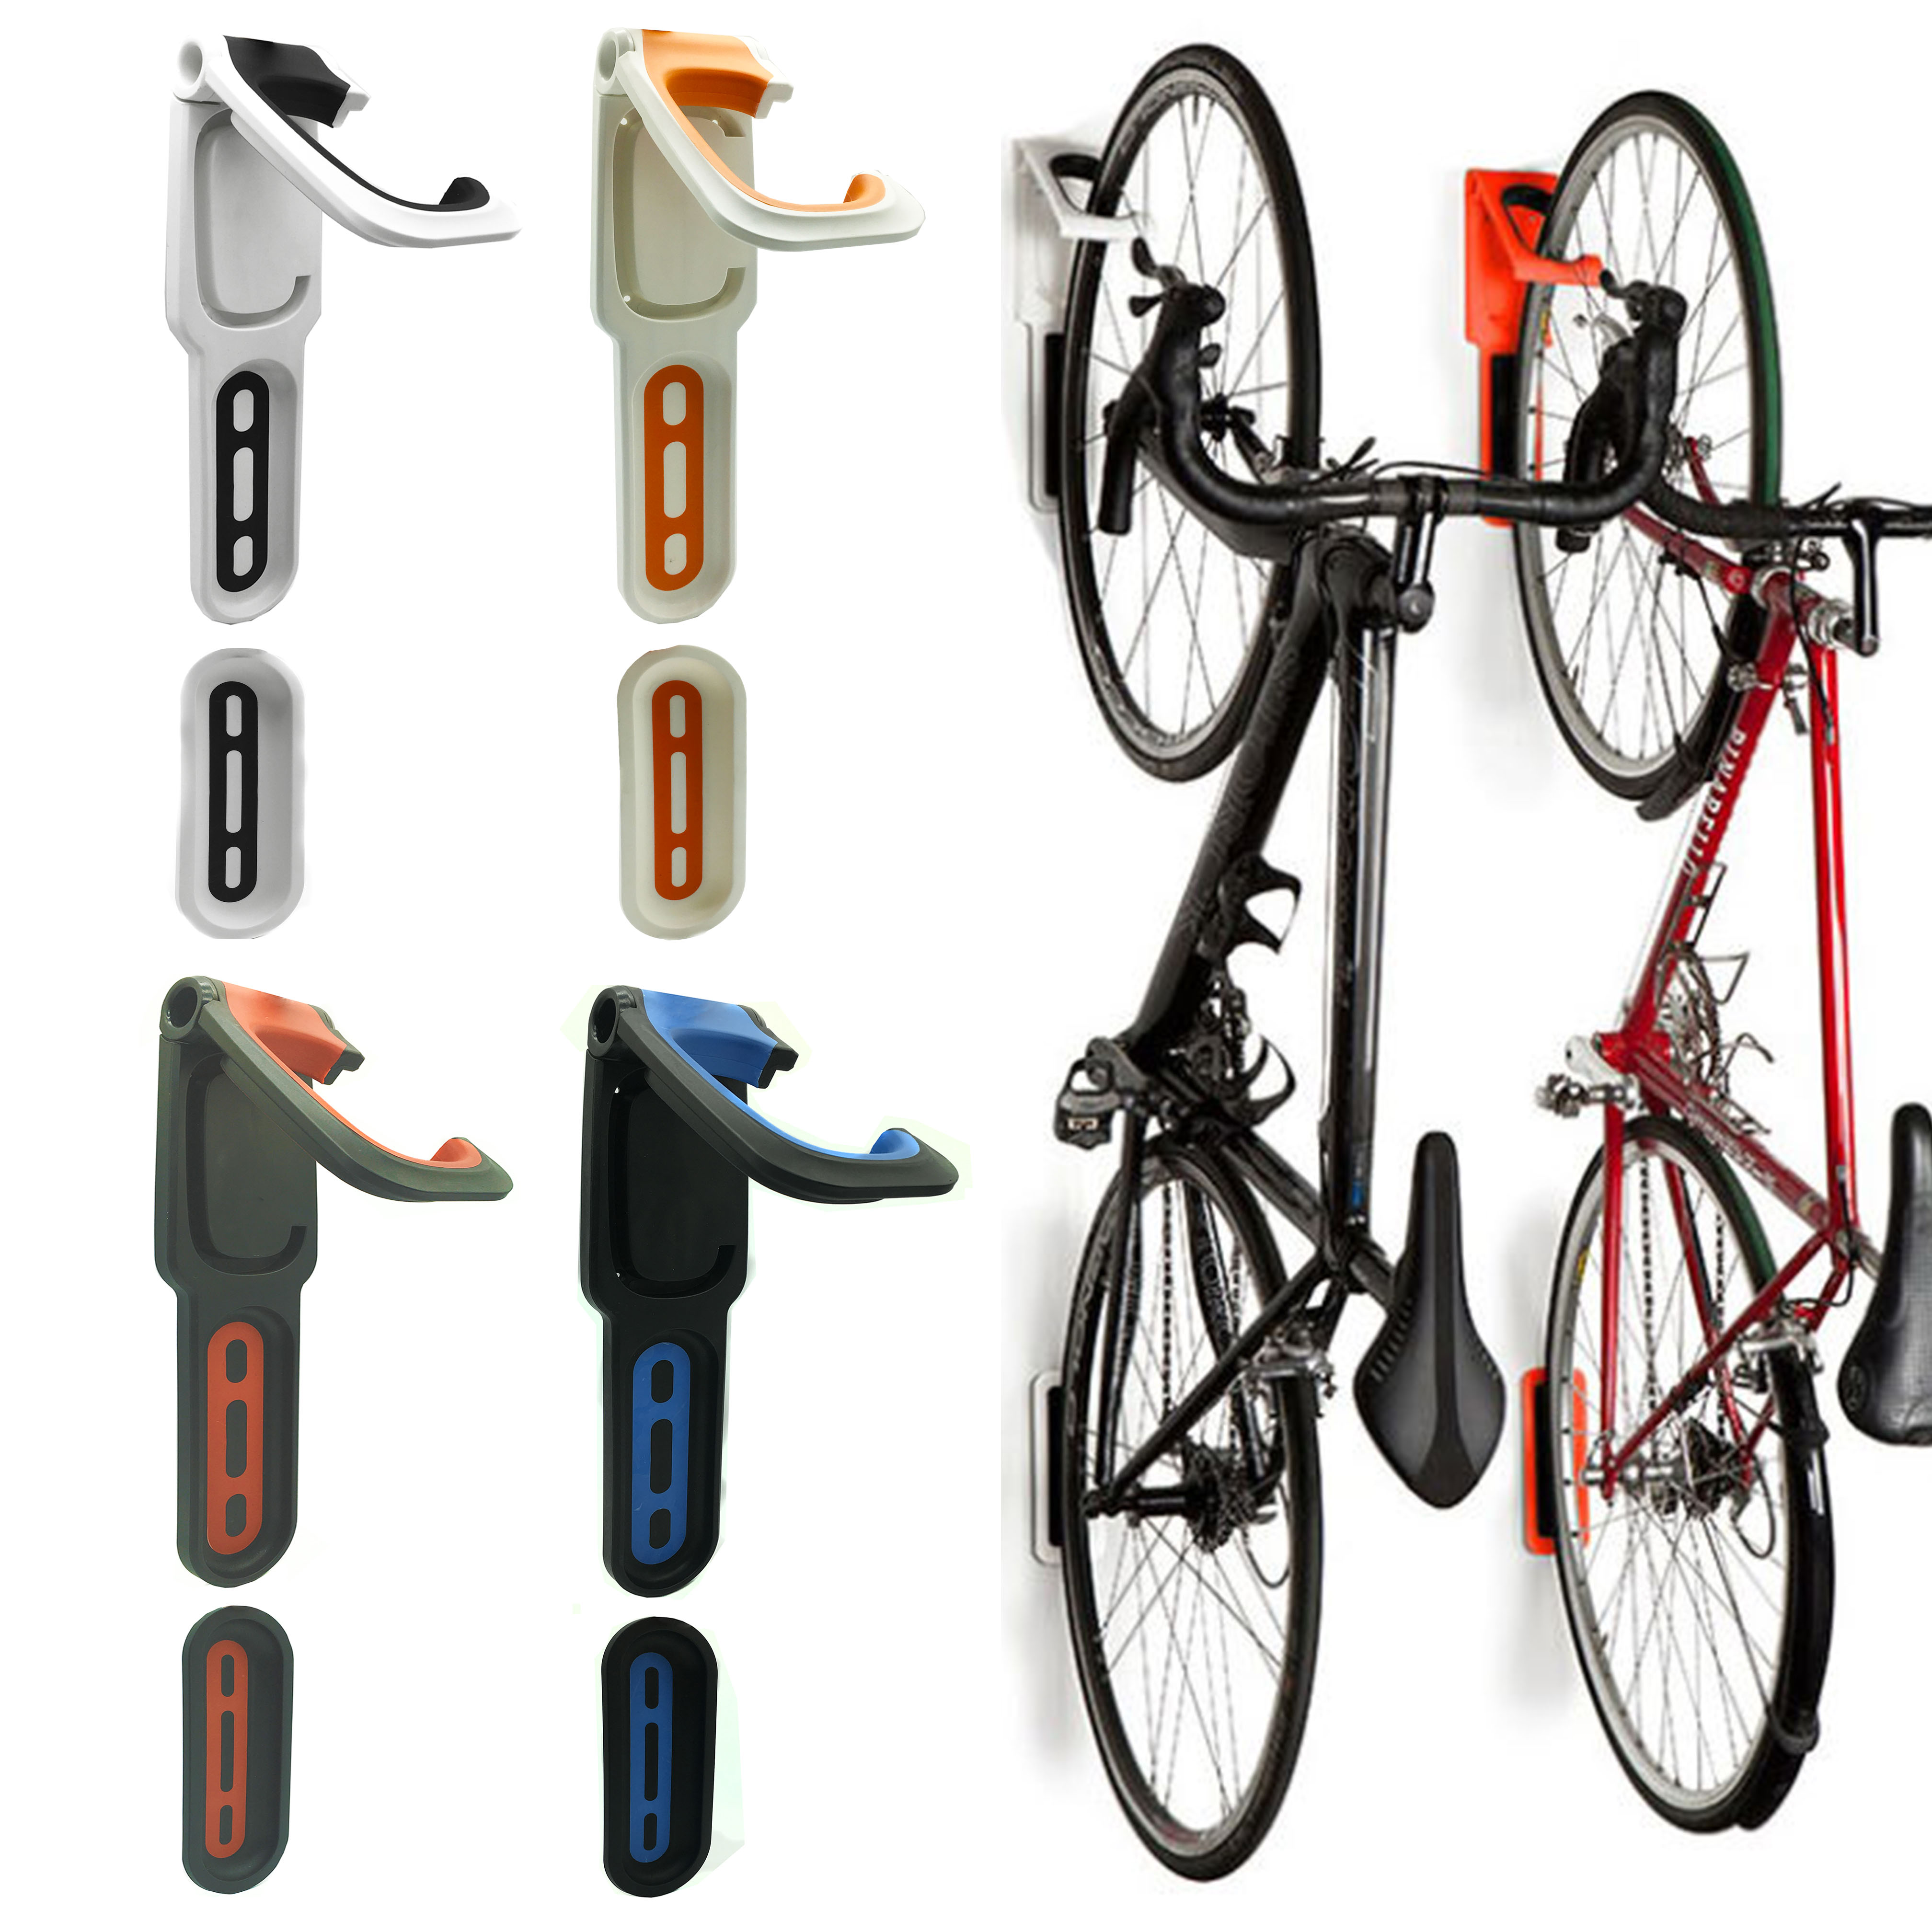 Reliancer 4 Color Foldable Vertical Bike Rack Wall Mounted Bicycle Cycle Storage Single Hook Hanger Holder W Tire Tray For Garage Shed